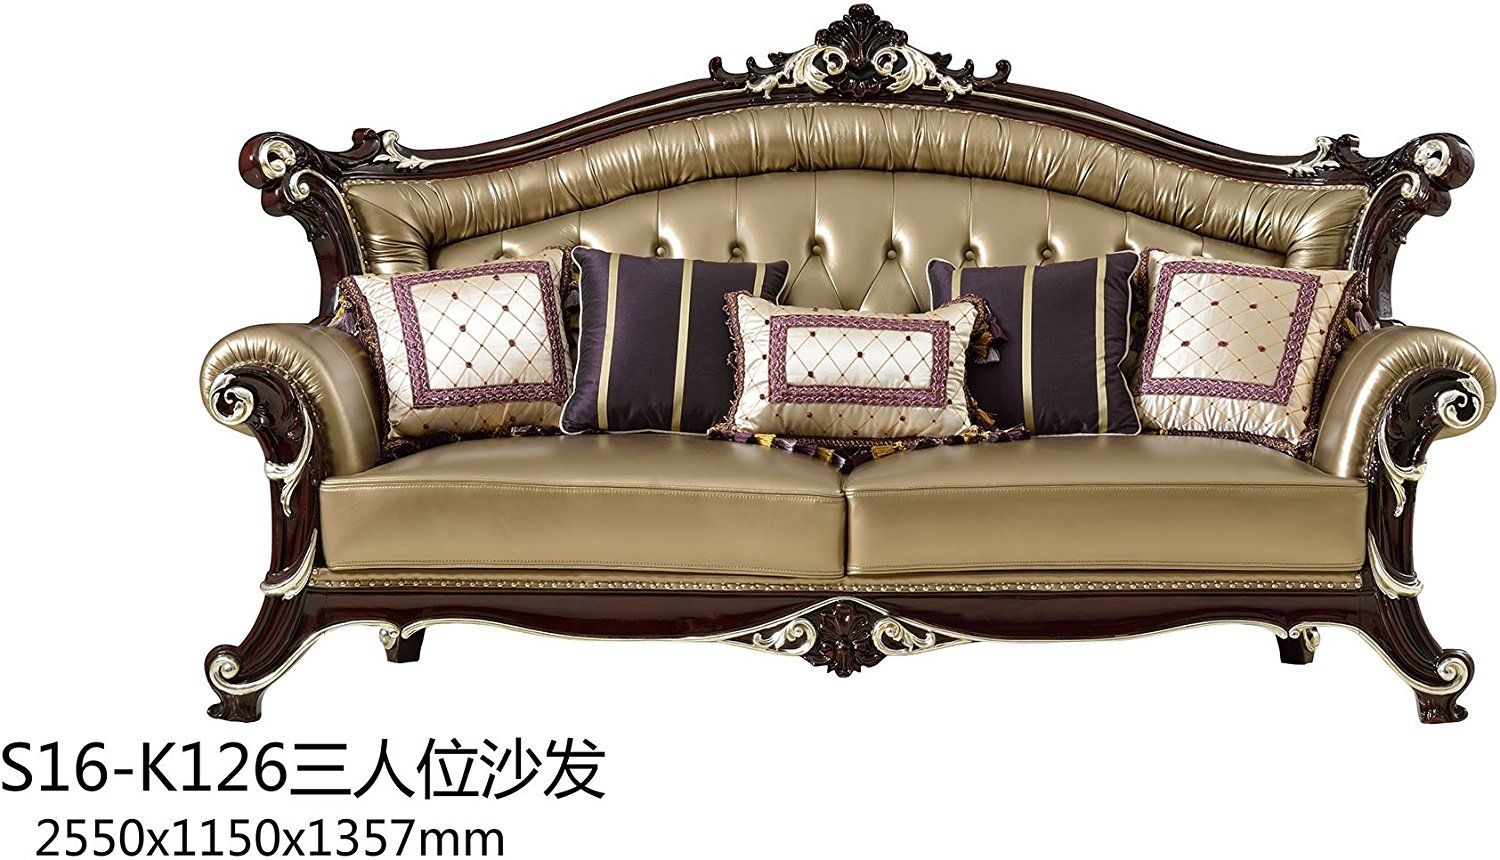 loveseat image sofa frame piece back pillow wood chair and